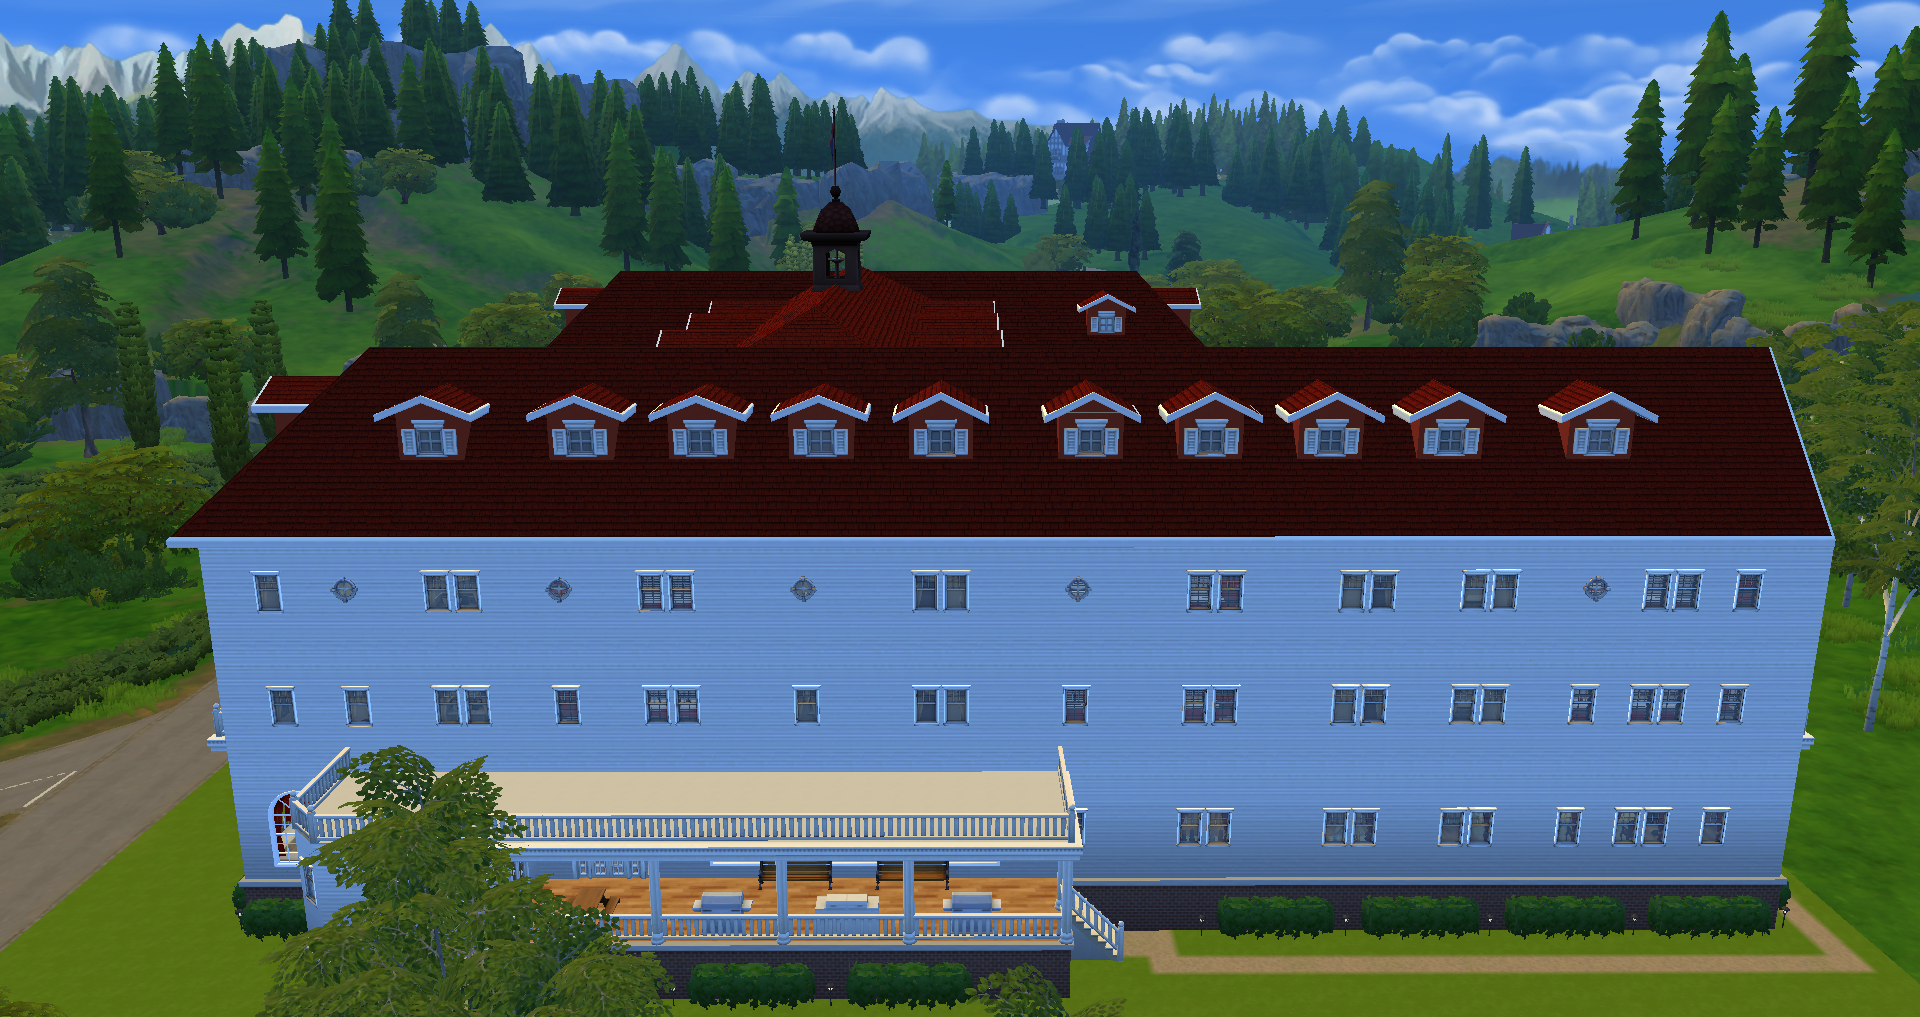 SIDE VIEW OF HOTEL